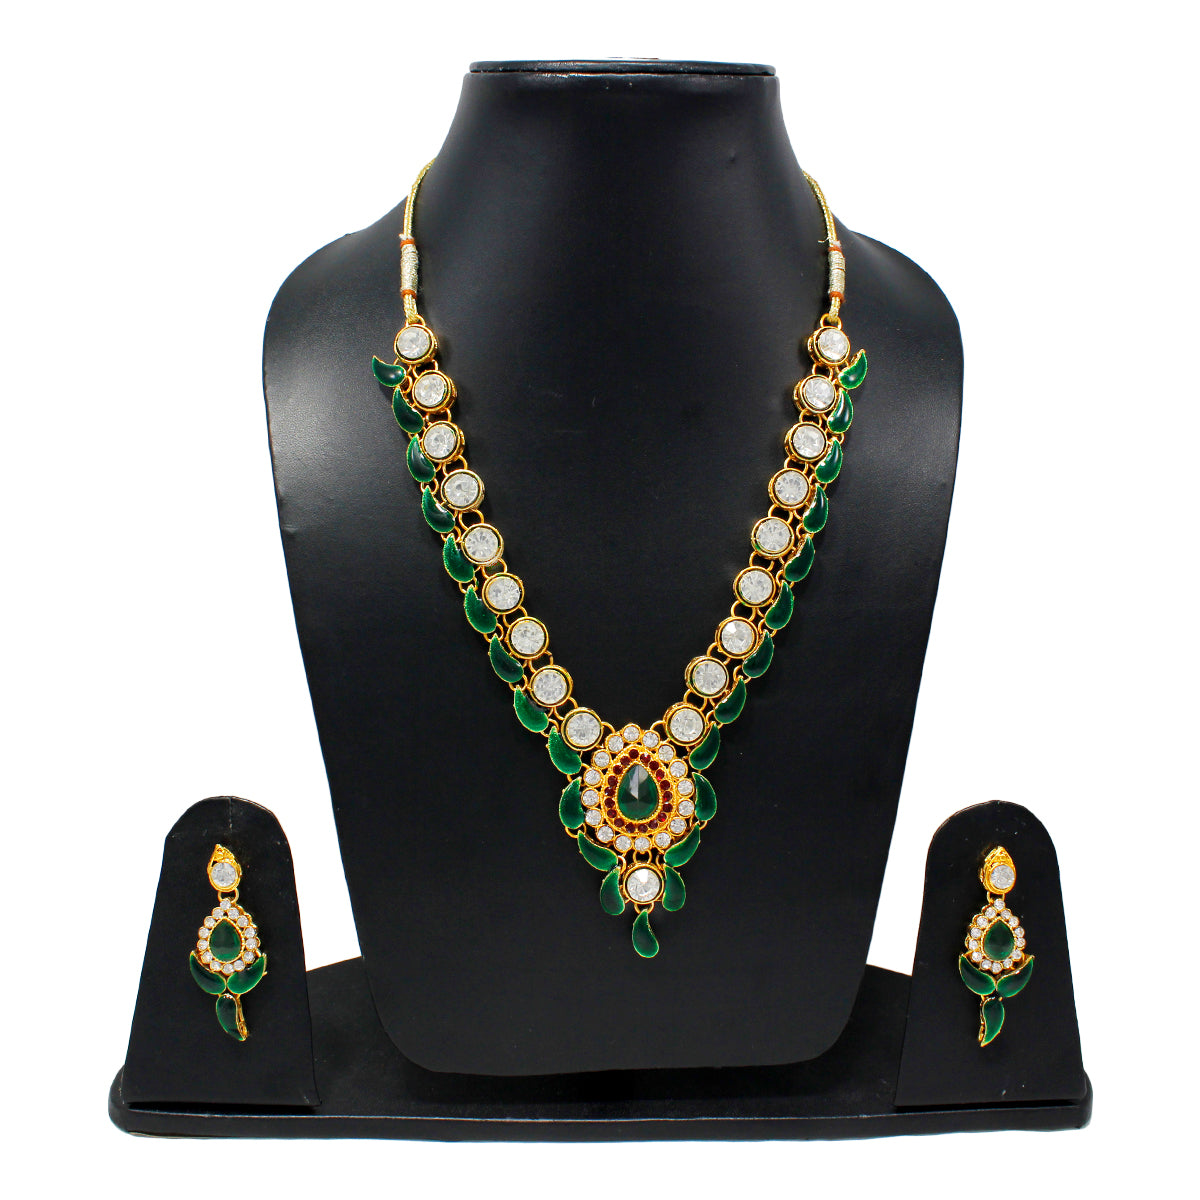 Royal Gold Plated Designer Kundan Stone Rani Har Mango Design Necklace and Earrings with White Green Stones